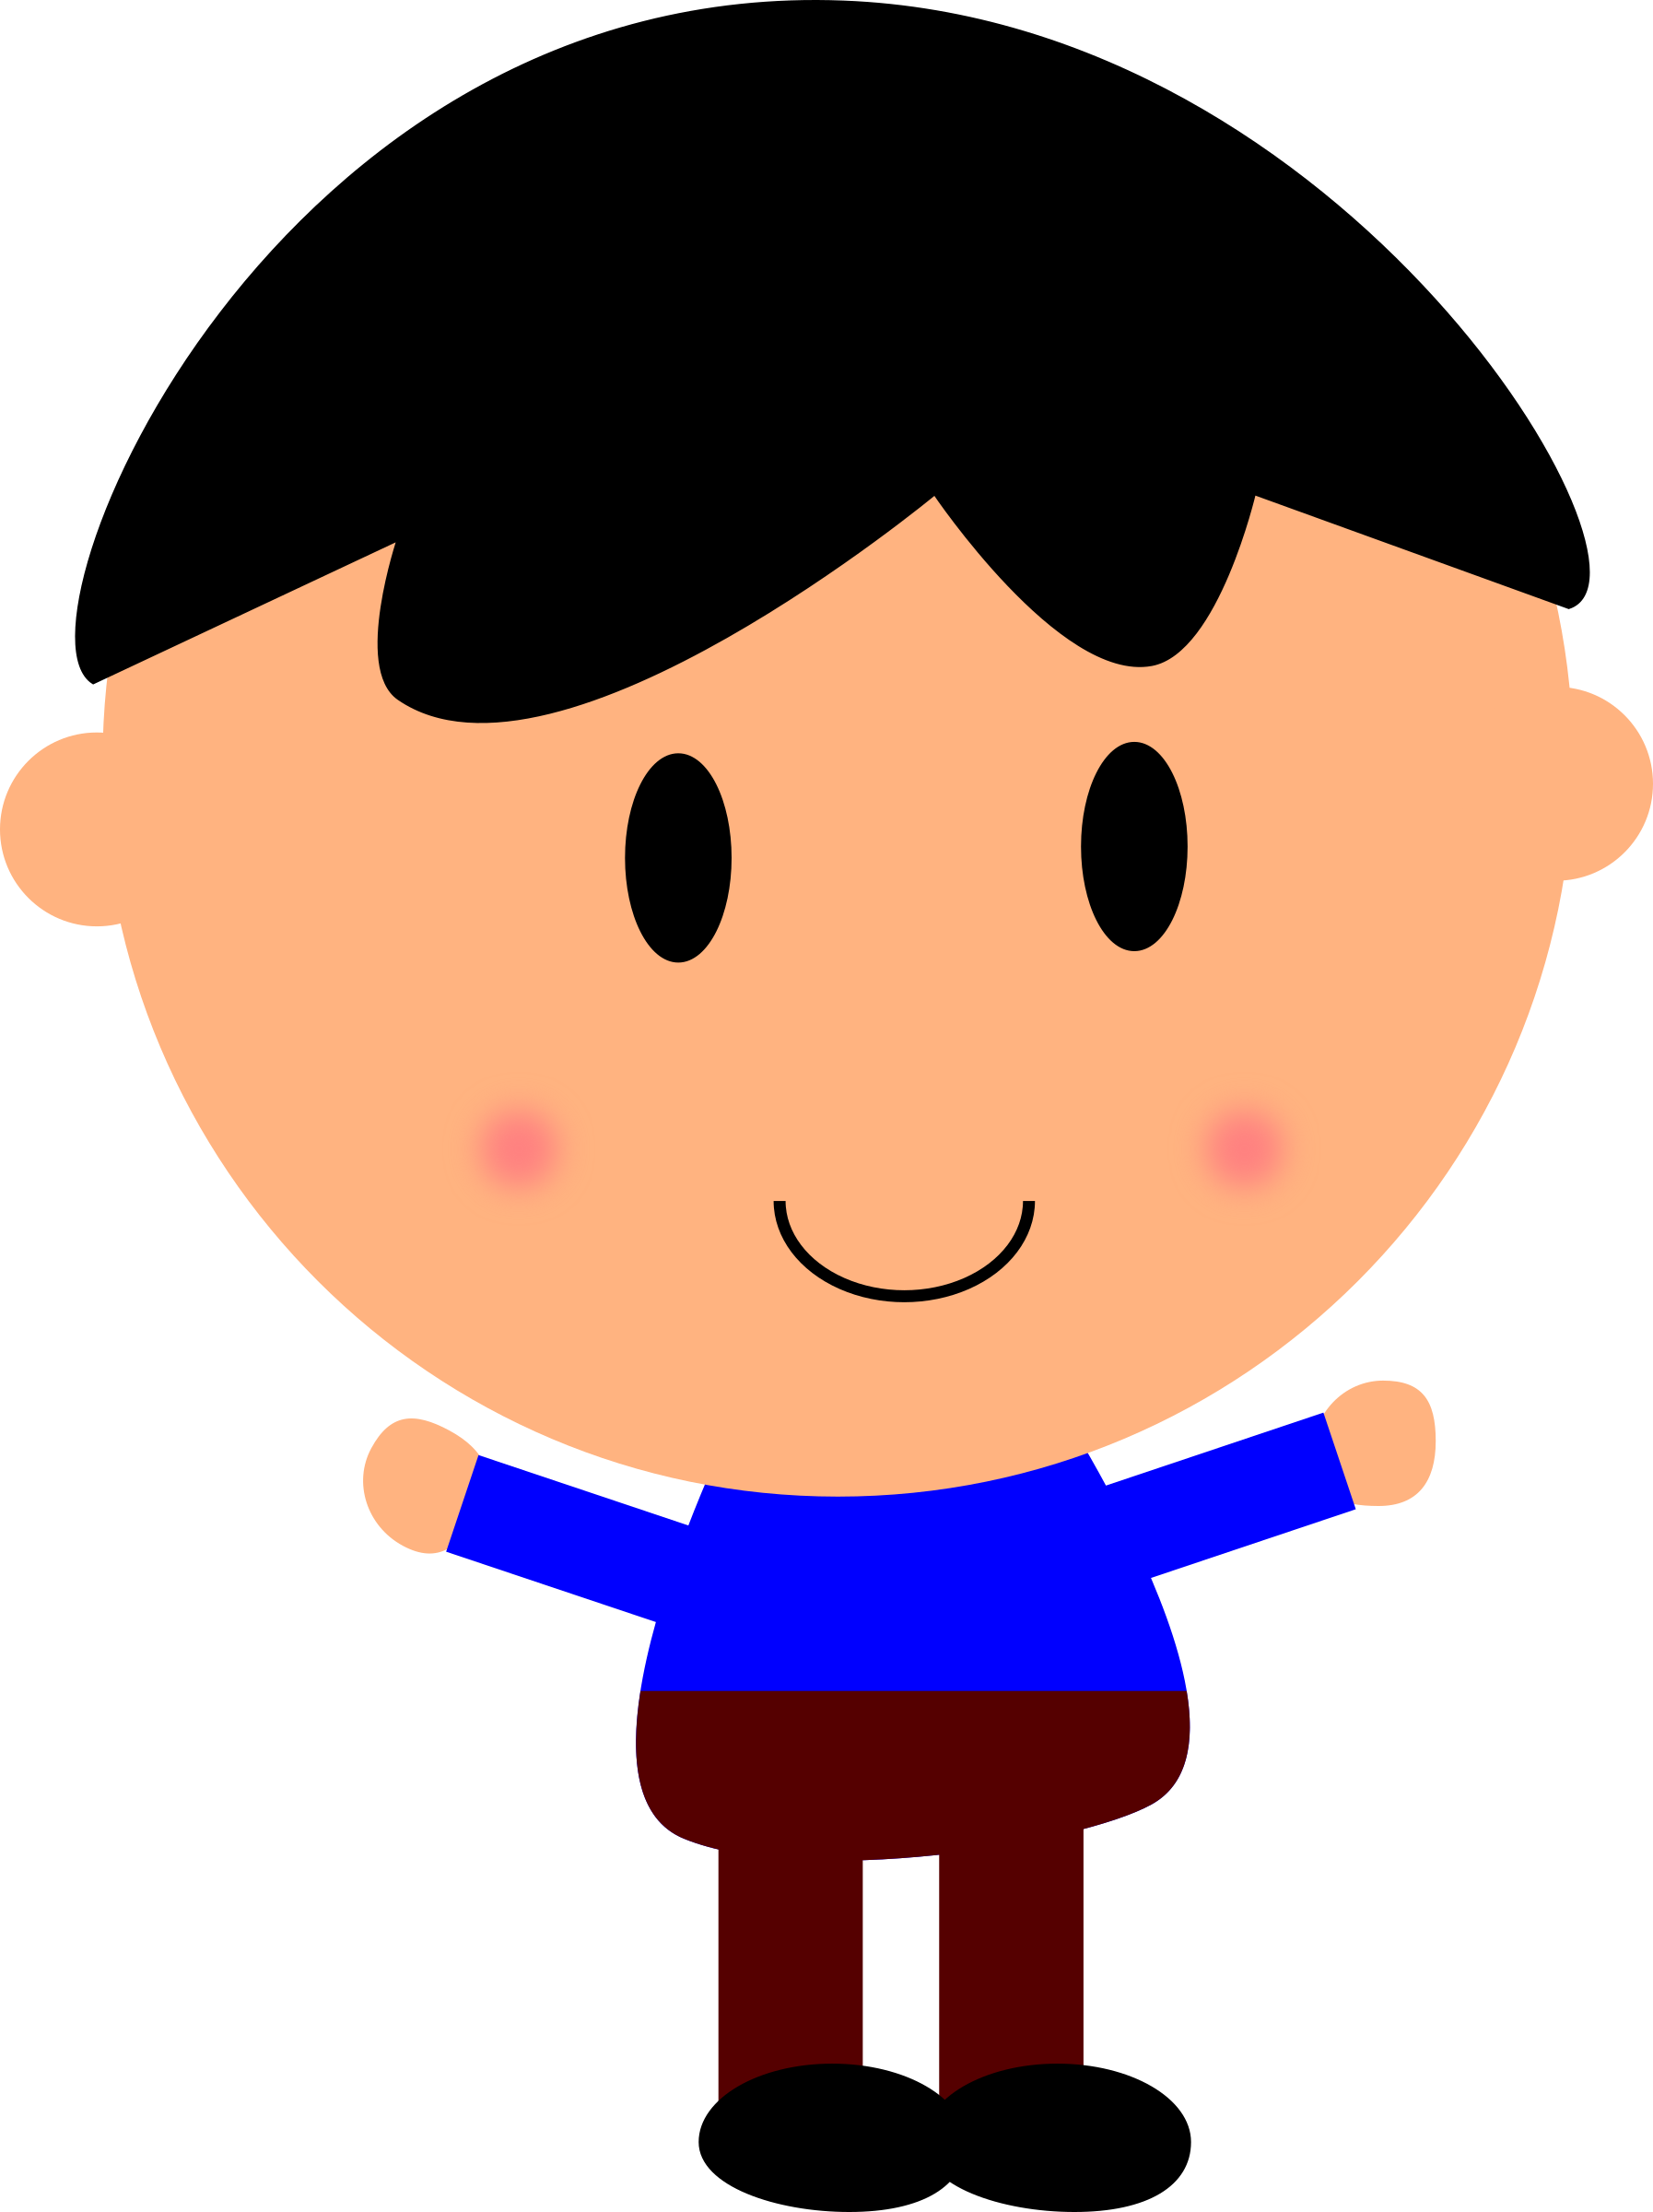 Scared boy png. Cartoon clipart hd top